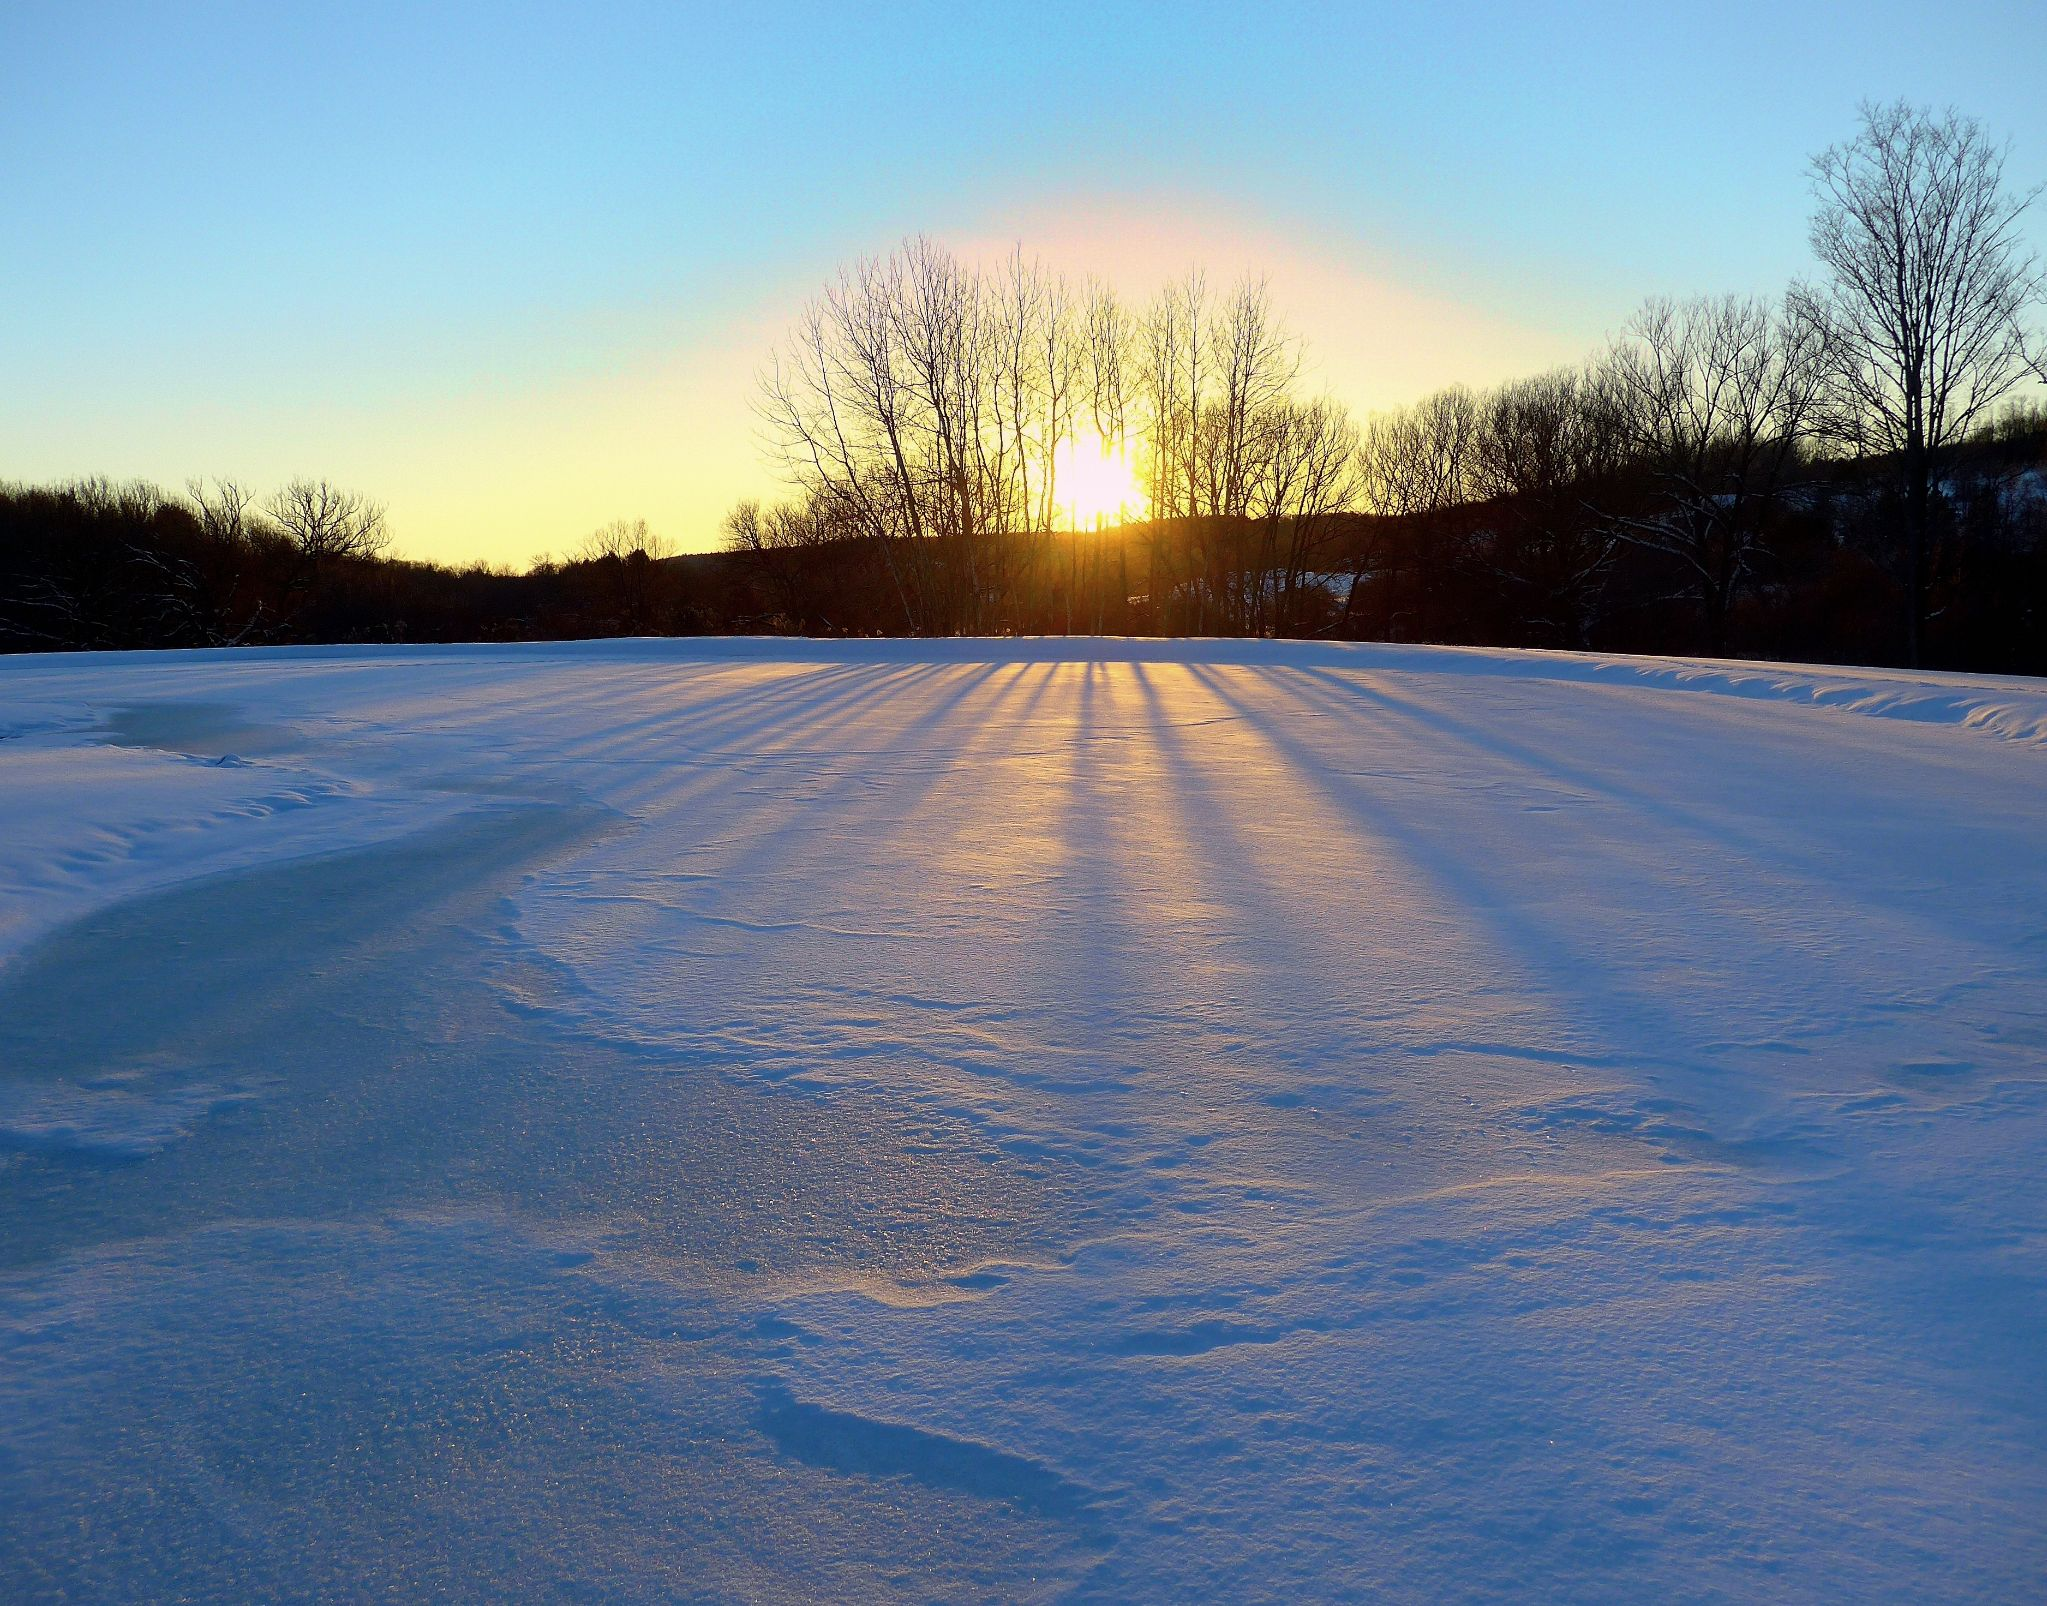 Sun through thin trees in distance with long shadows over level snowy surface.